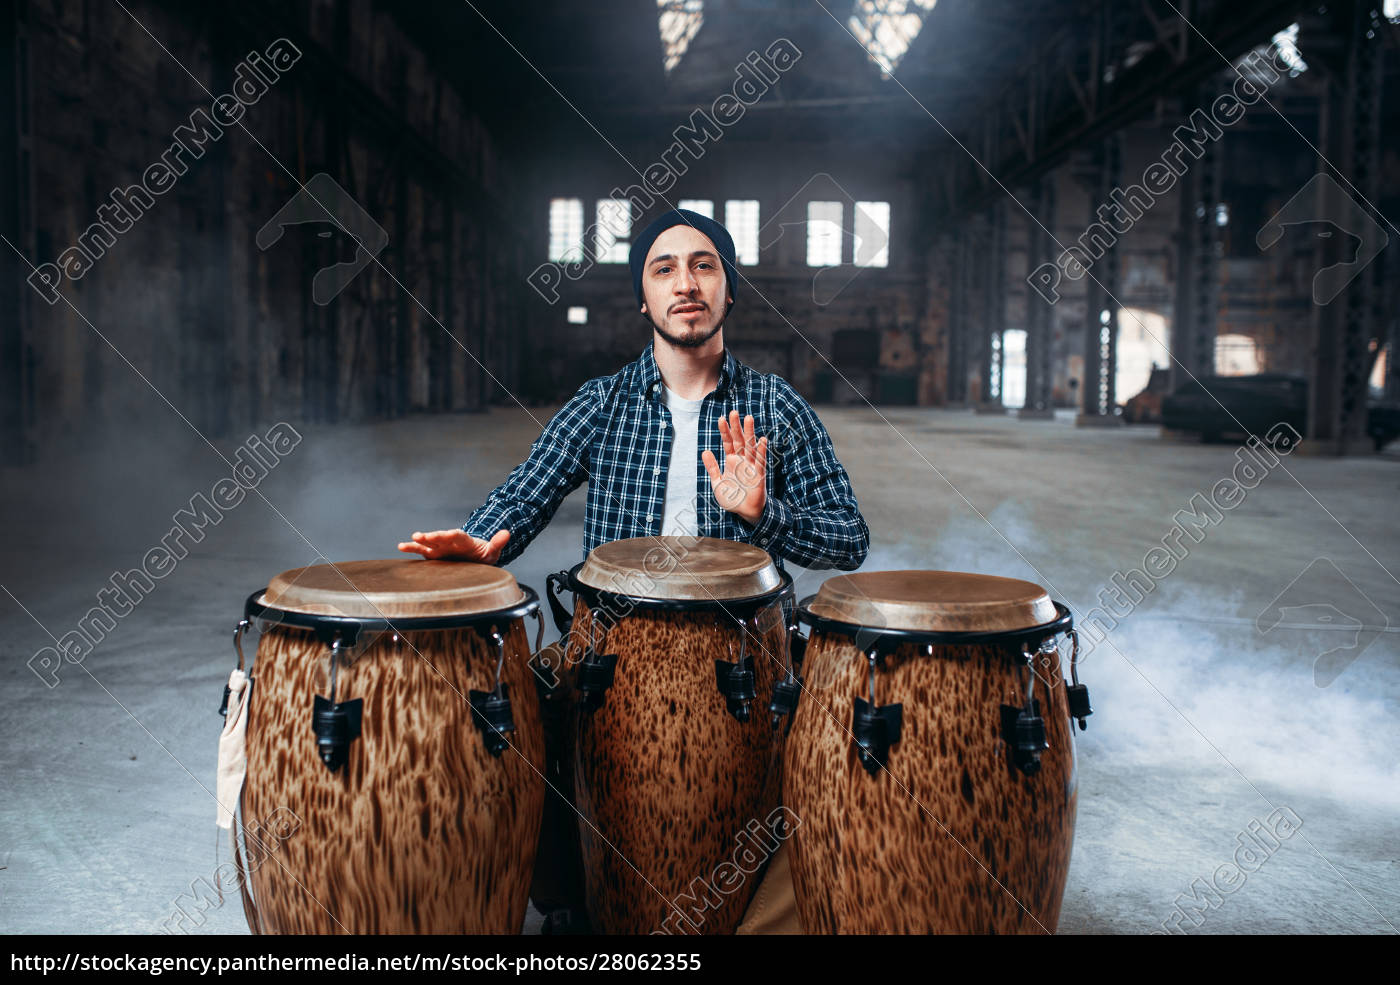 male, drummer, plays, on, wooden, drums - 28062355